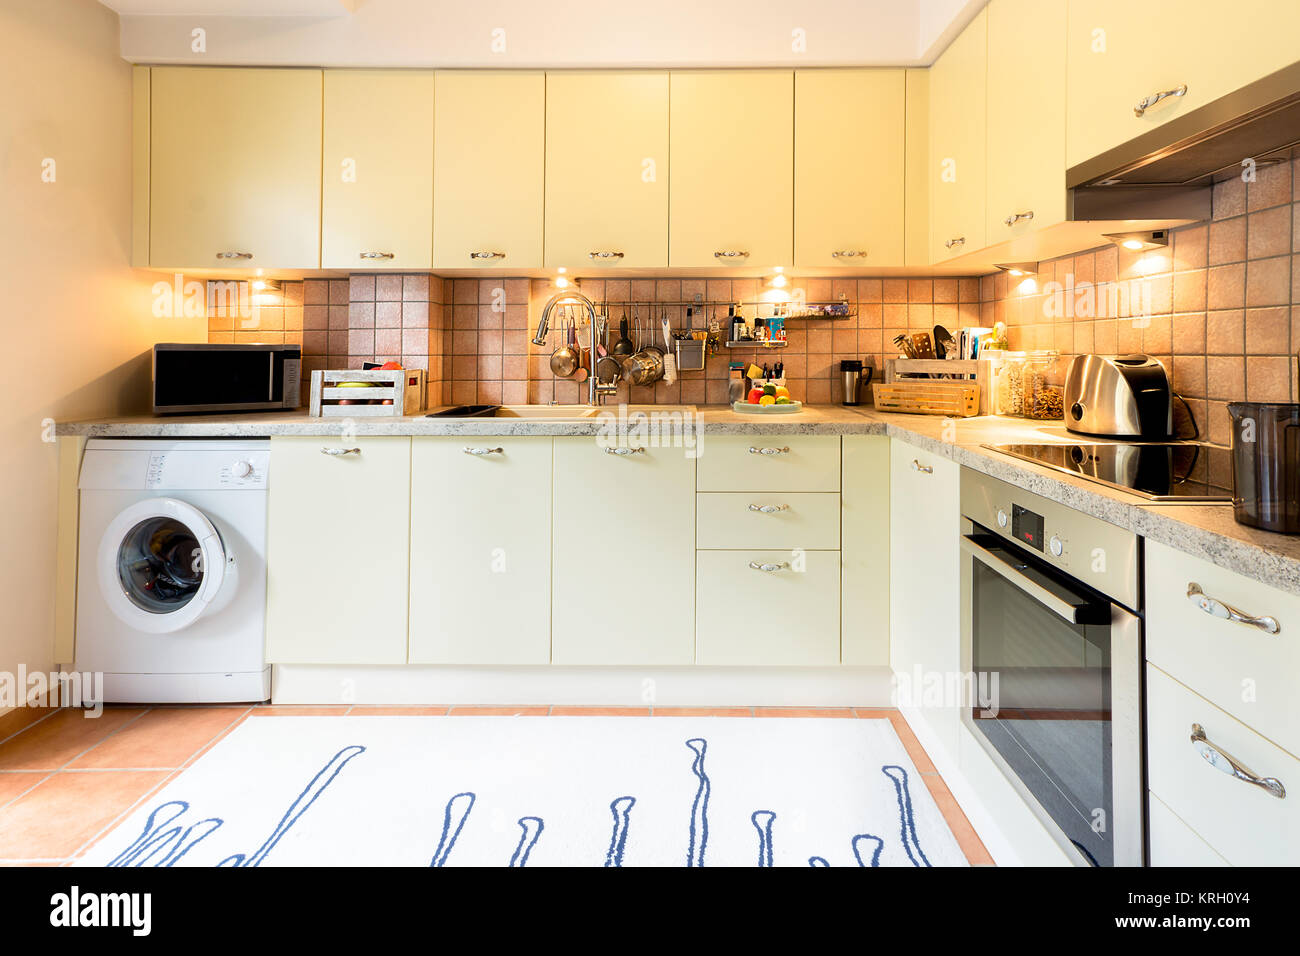 A Modern Kitchen With Laminated Cupboards And Cabinets